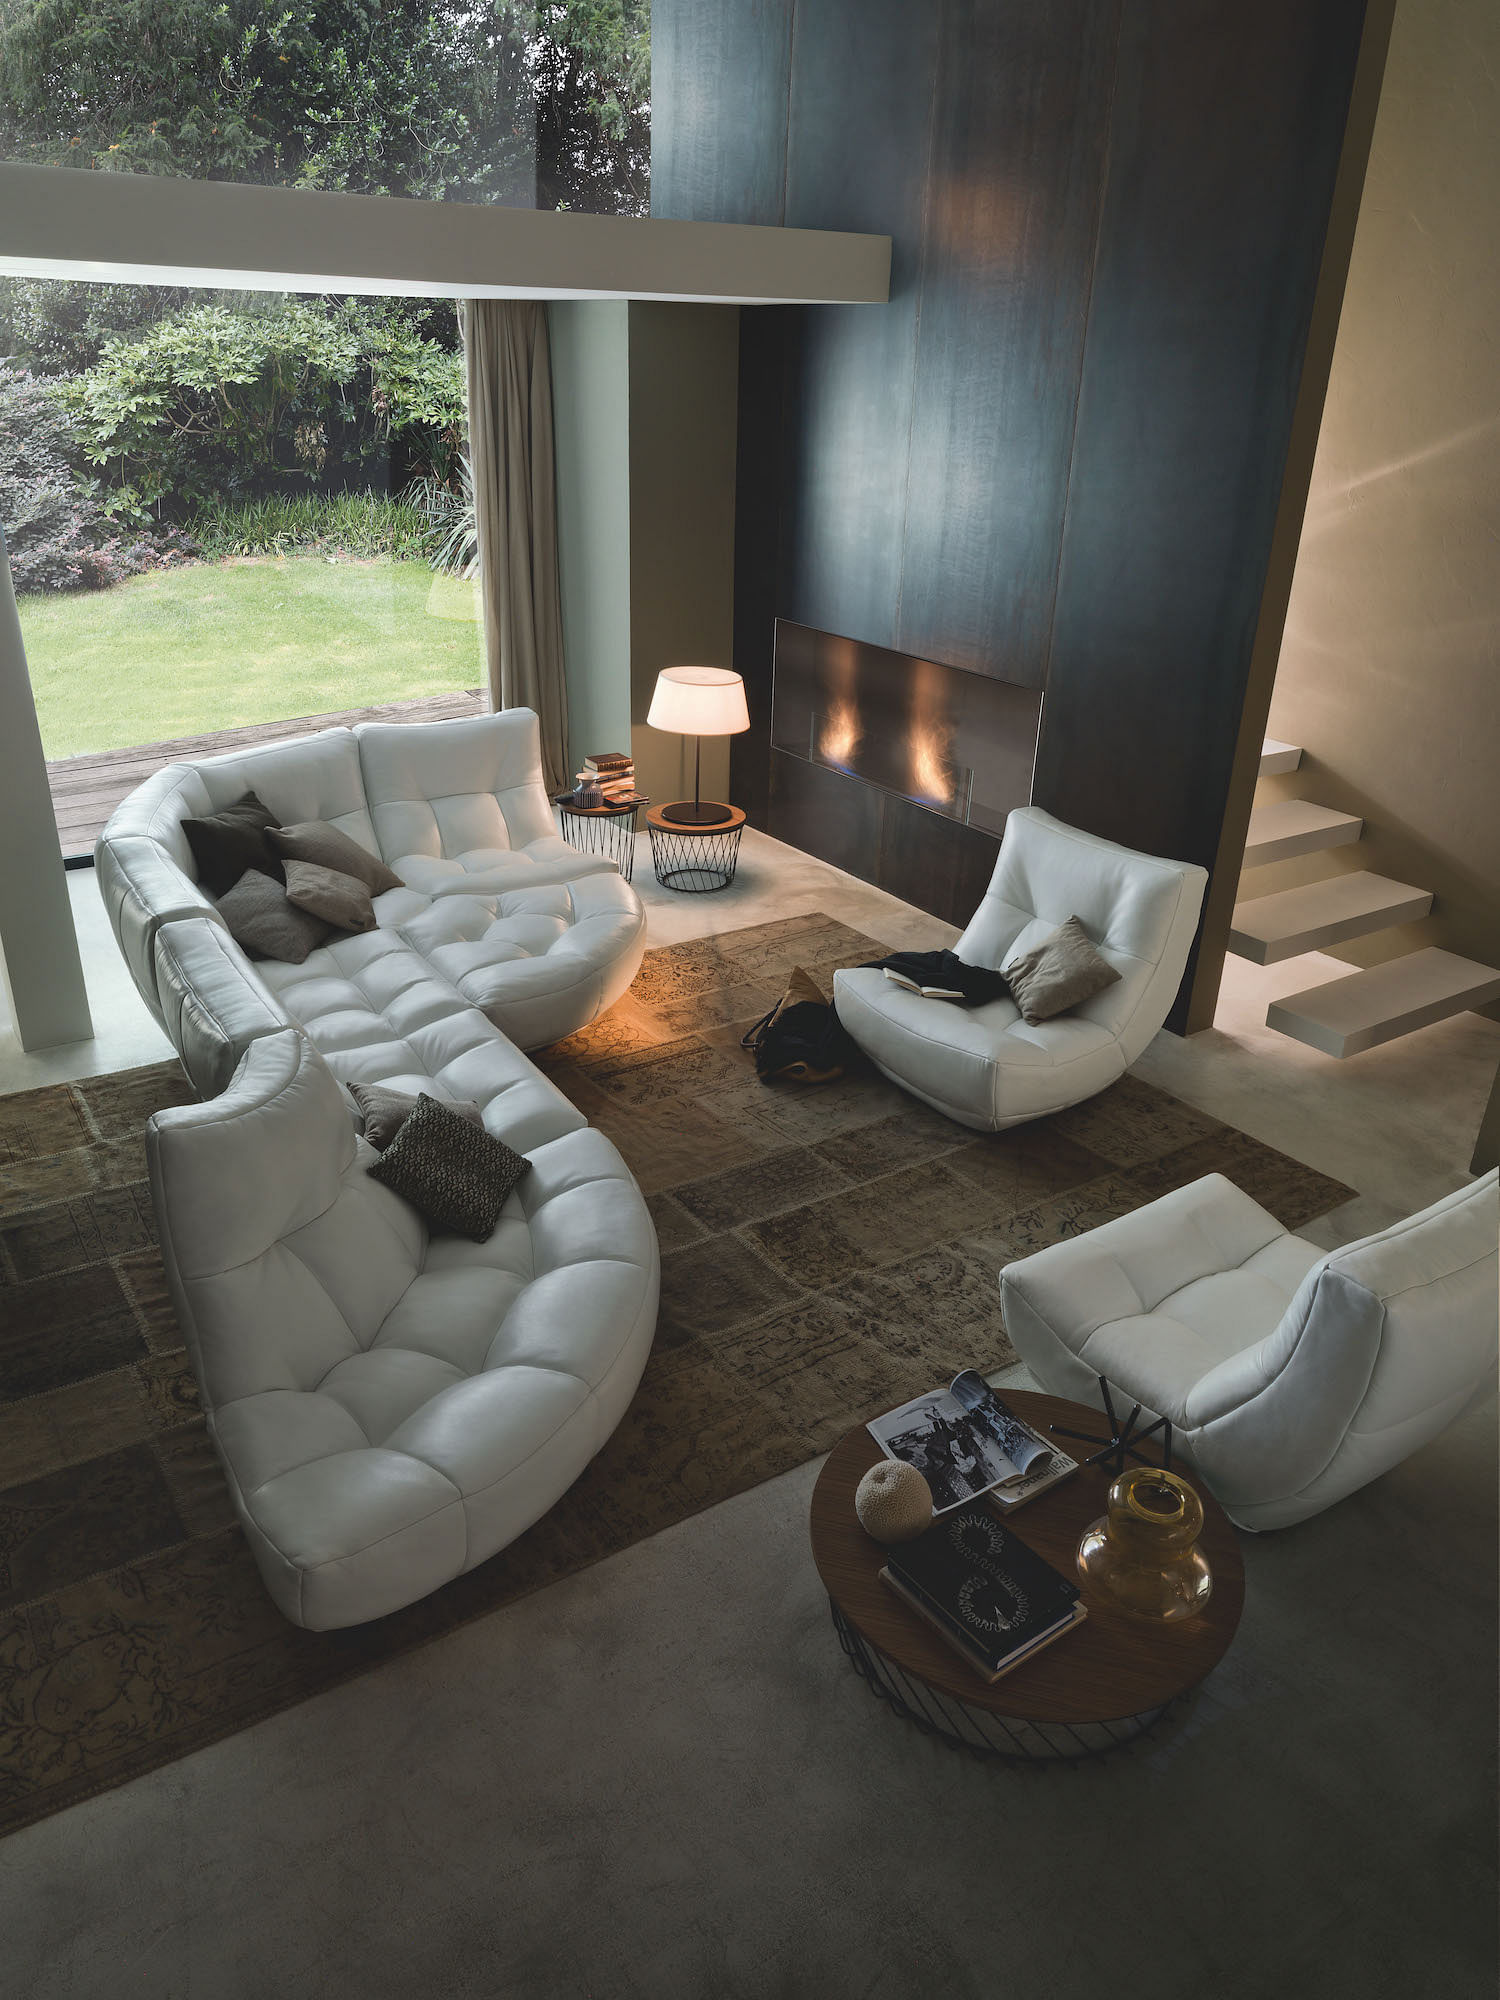 Italian Sofa Makers Chateau D Ax Now In Singapore Home